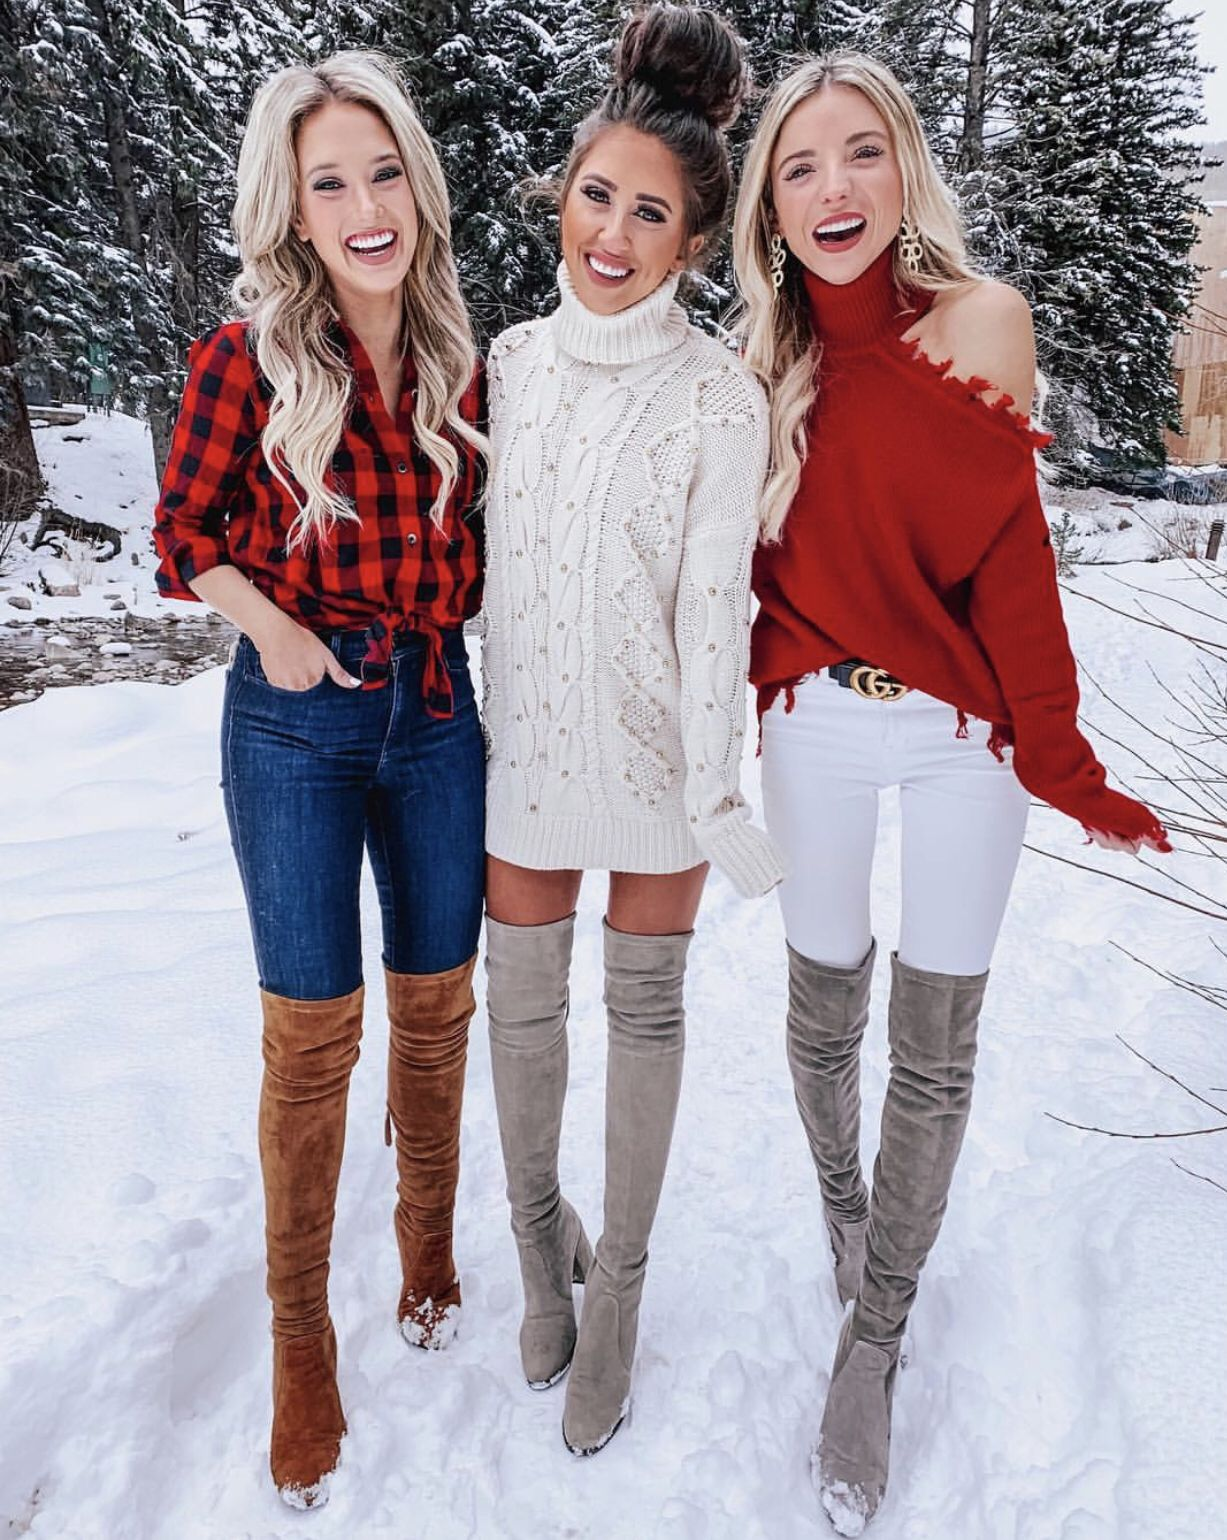 Dressupbuttercup Christmas Fashion Outfits Christmas Outfits Women Cute Christmas Outfits